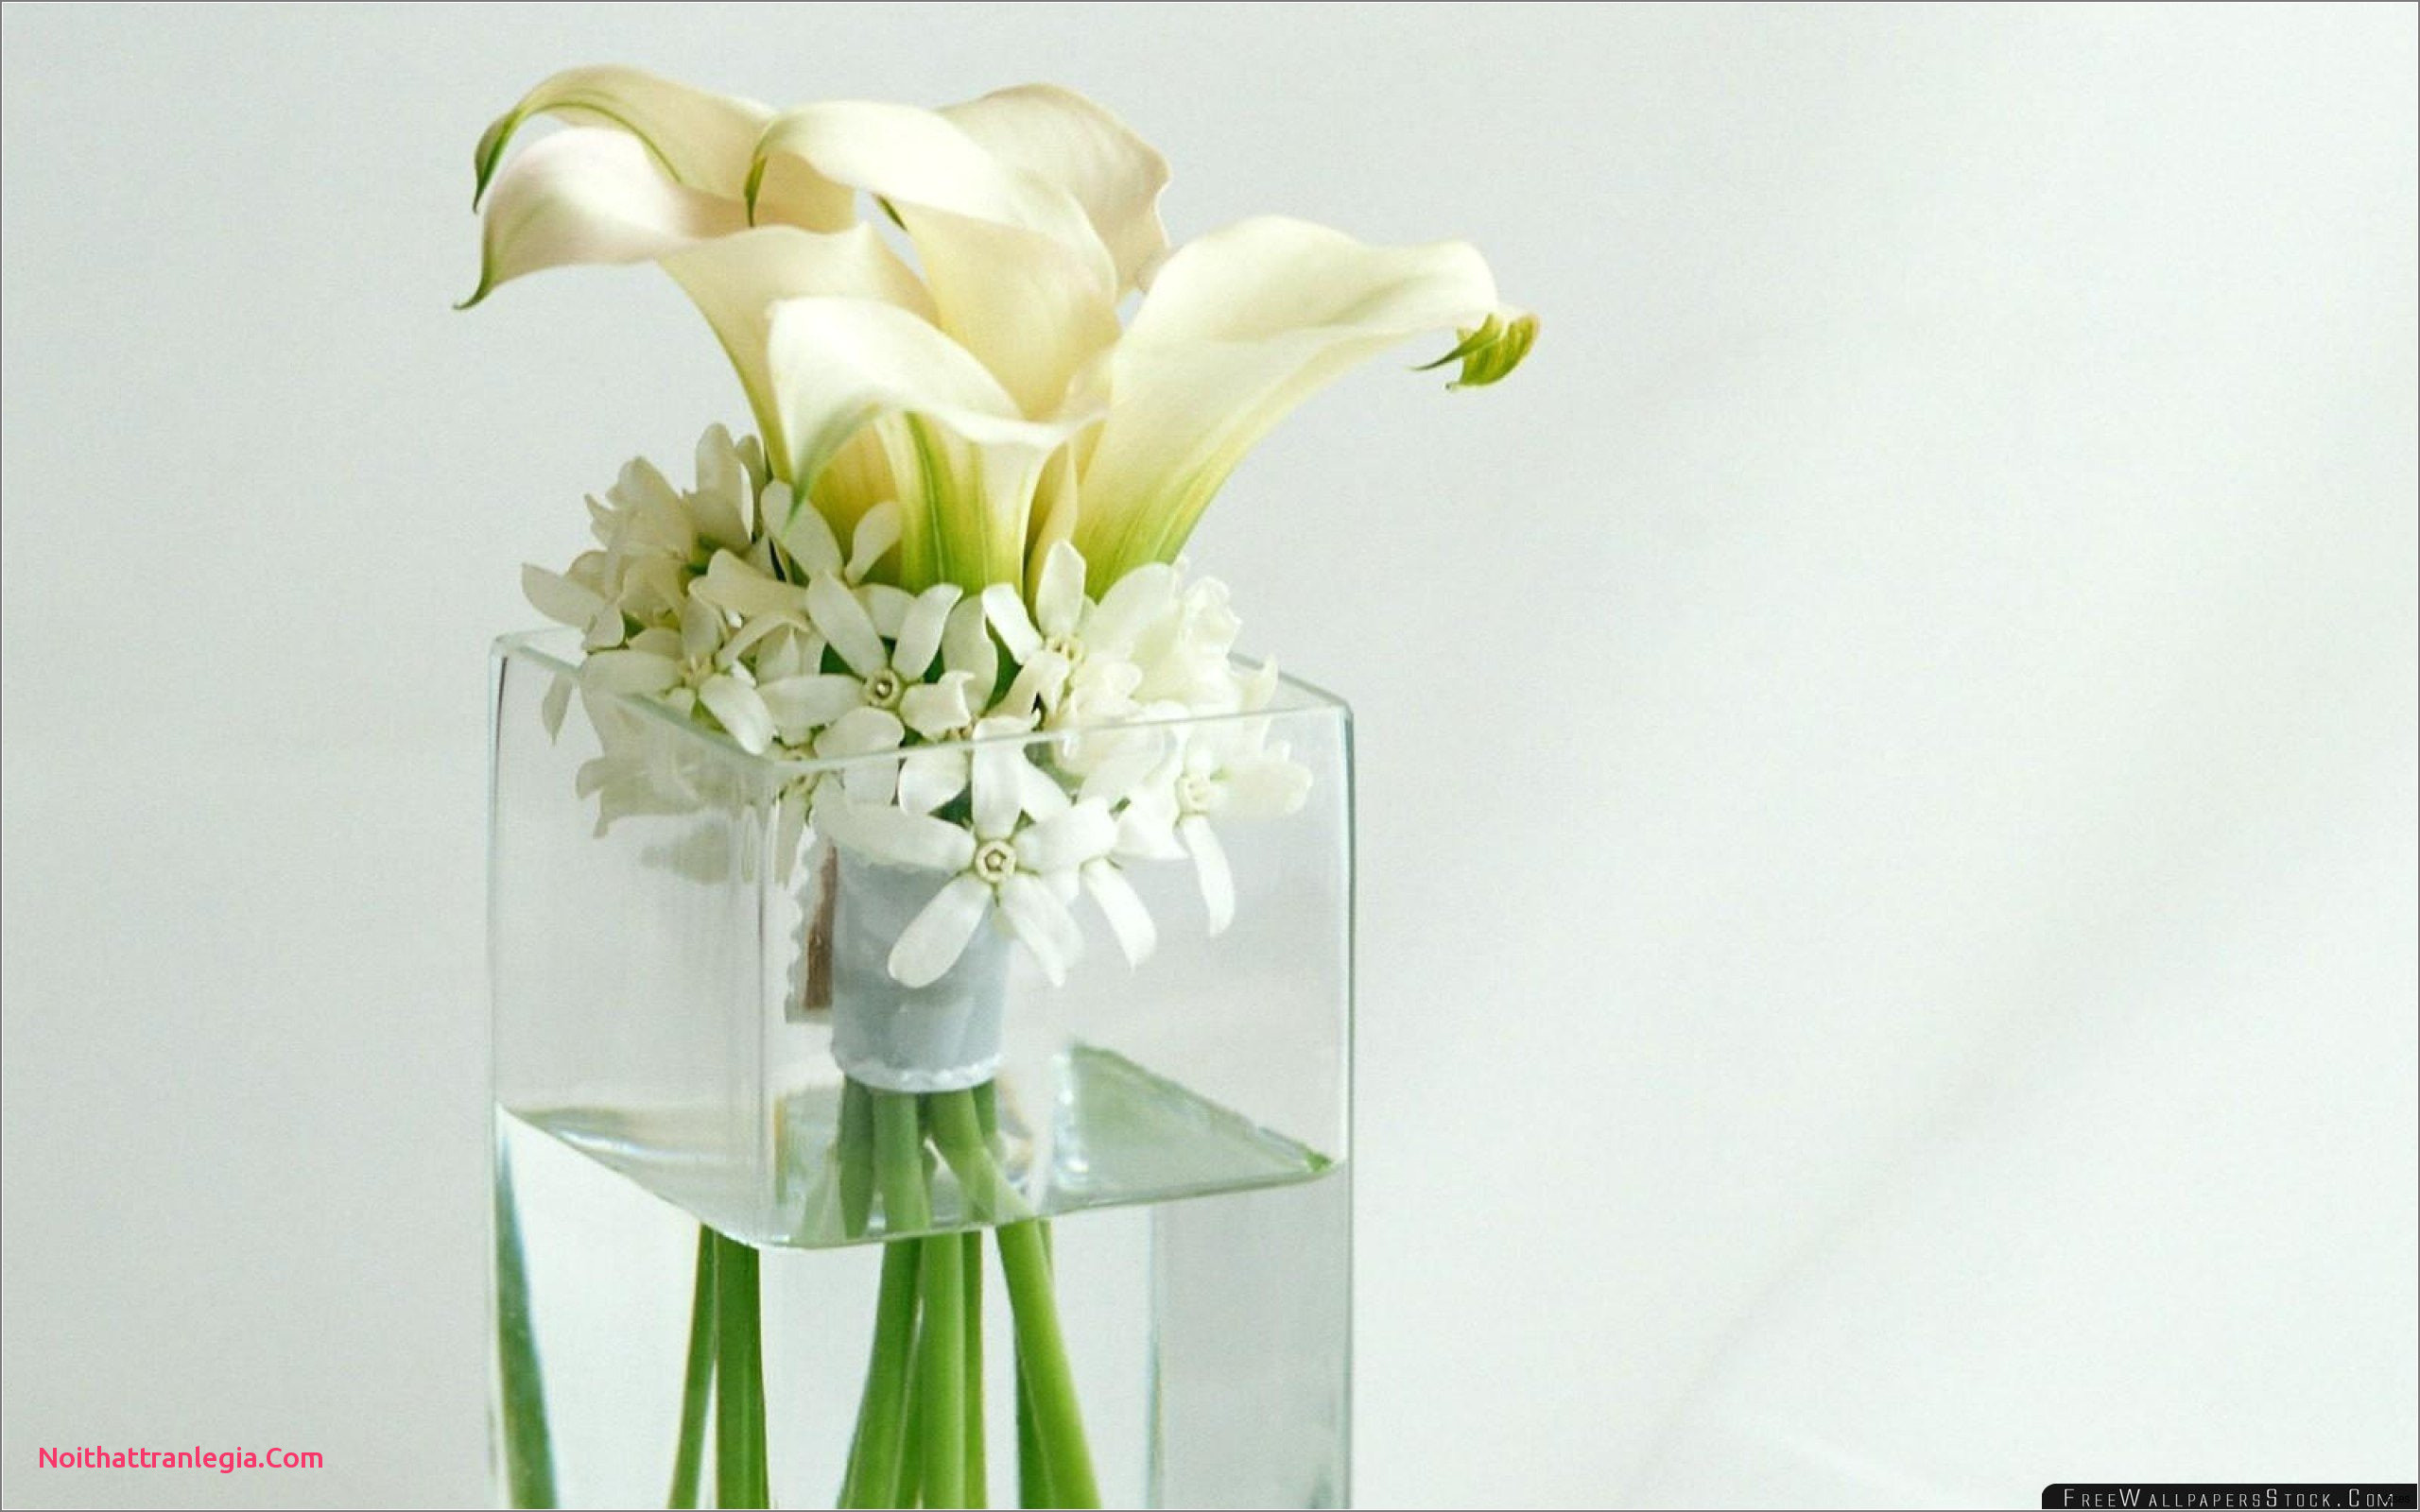 19 Awesome Daisies In A Vase